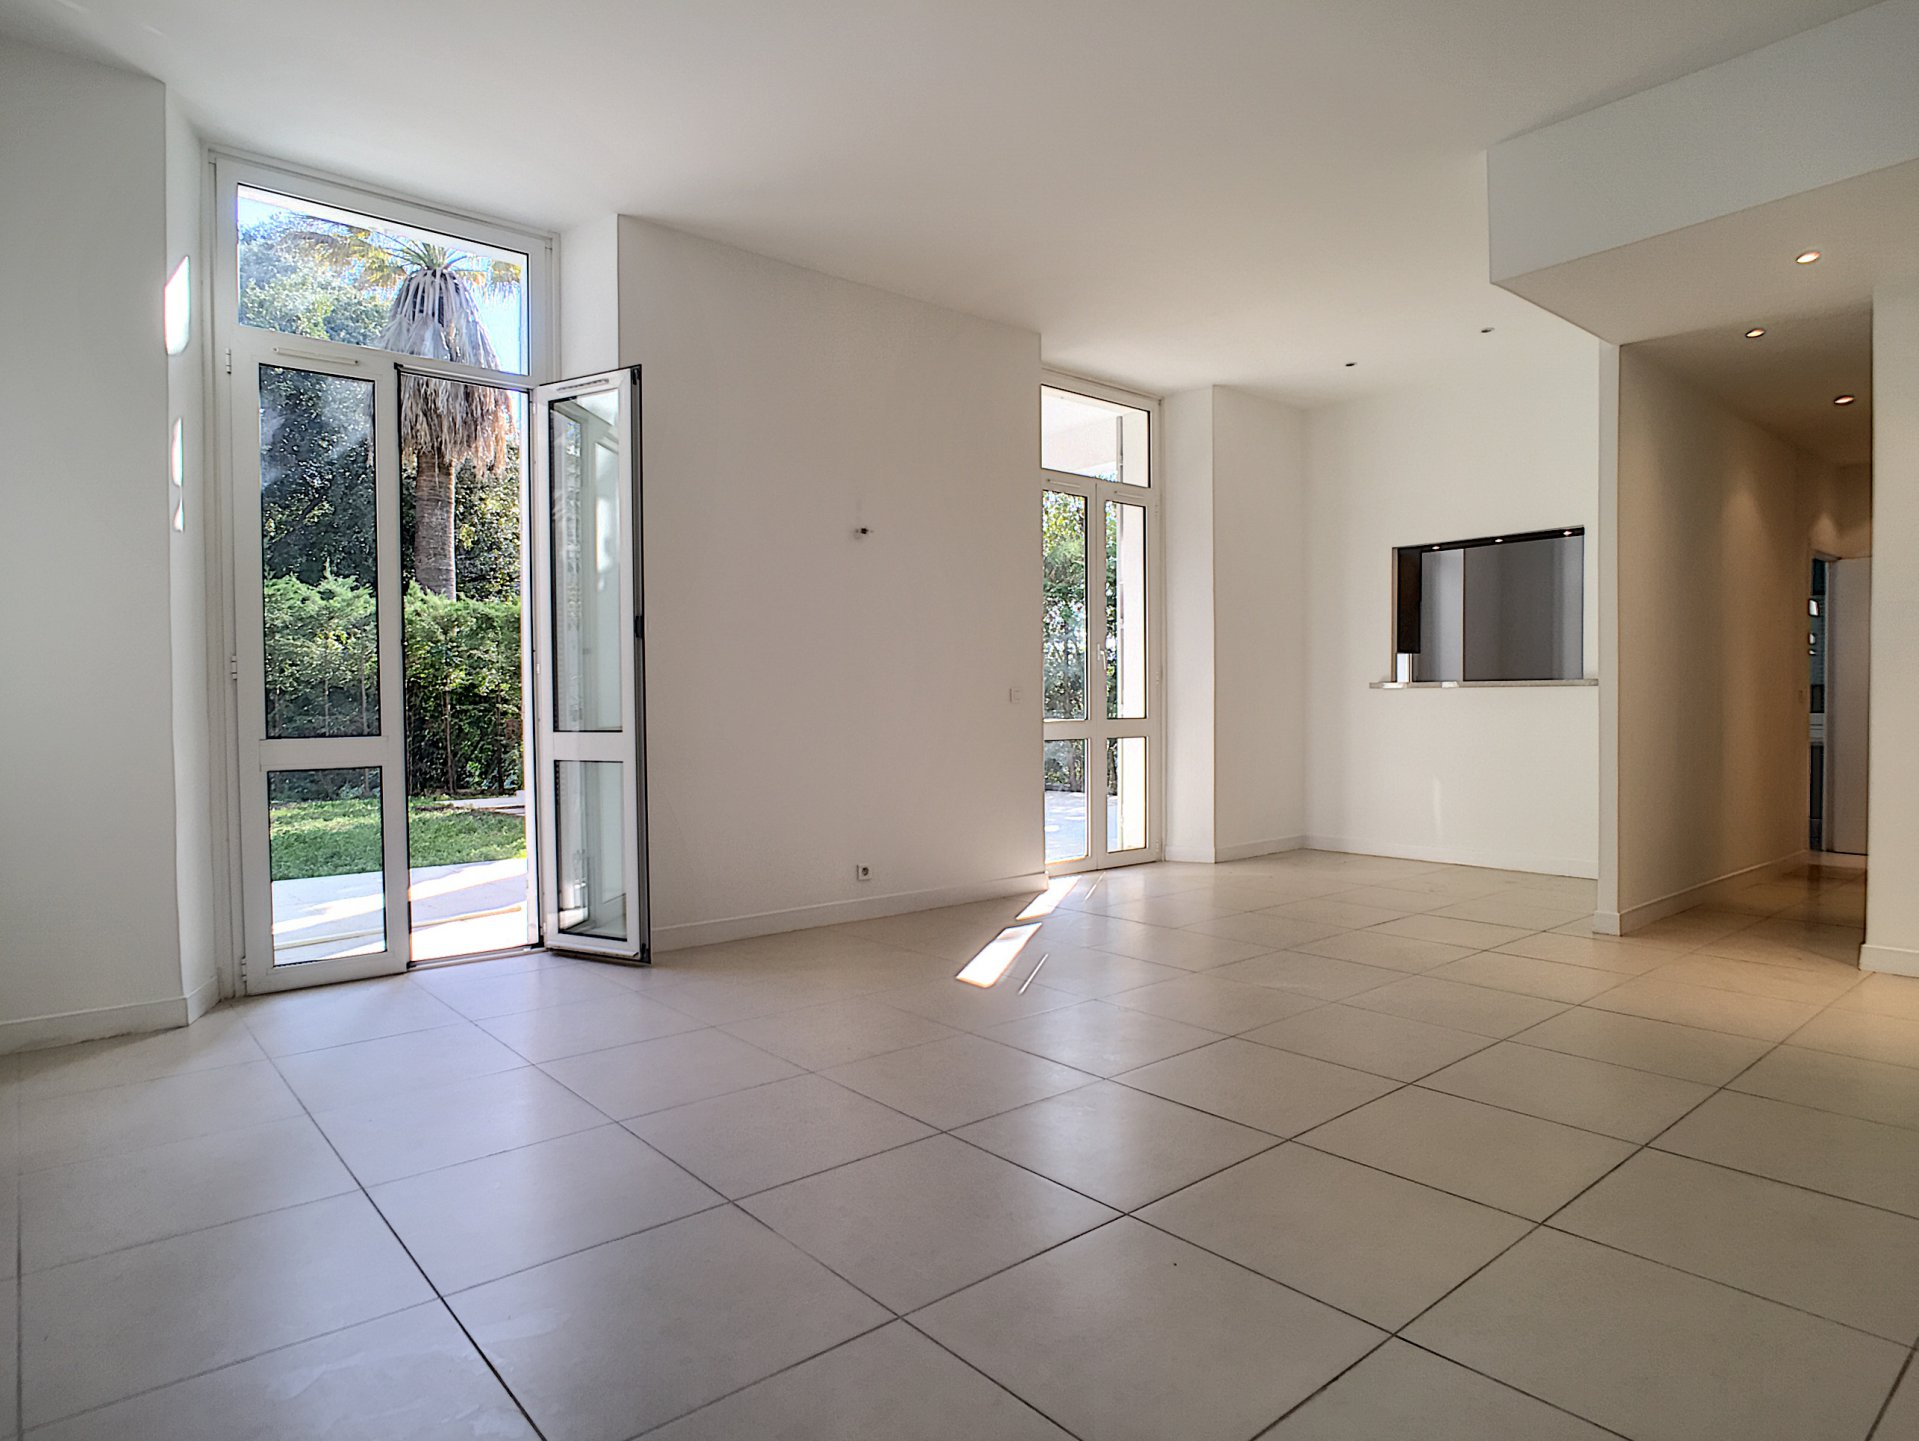 Le Cannet - 3 bedrooms flat with garden